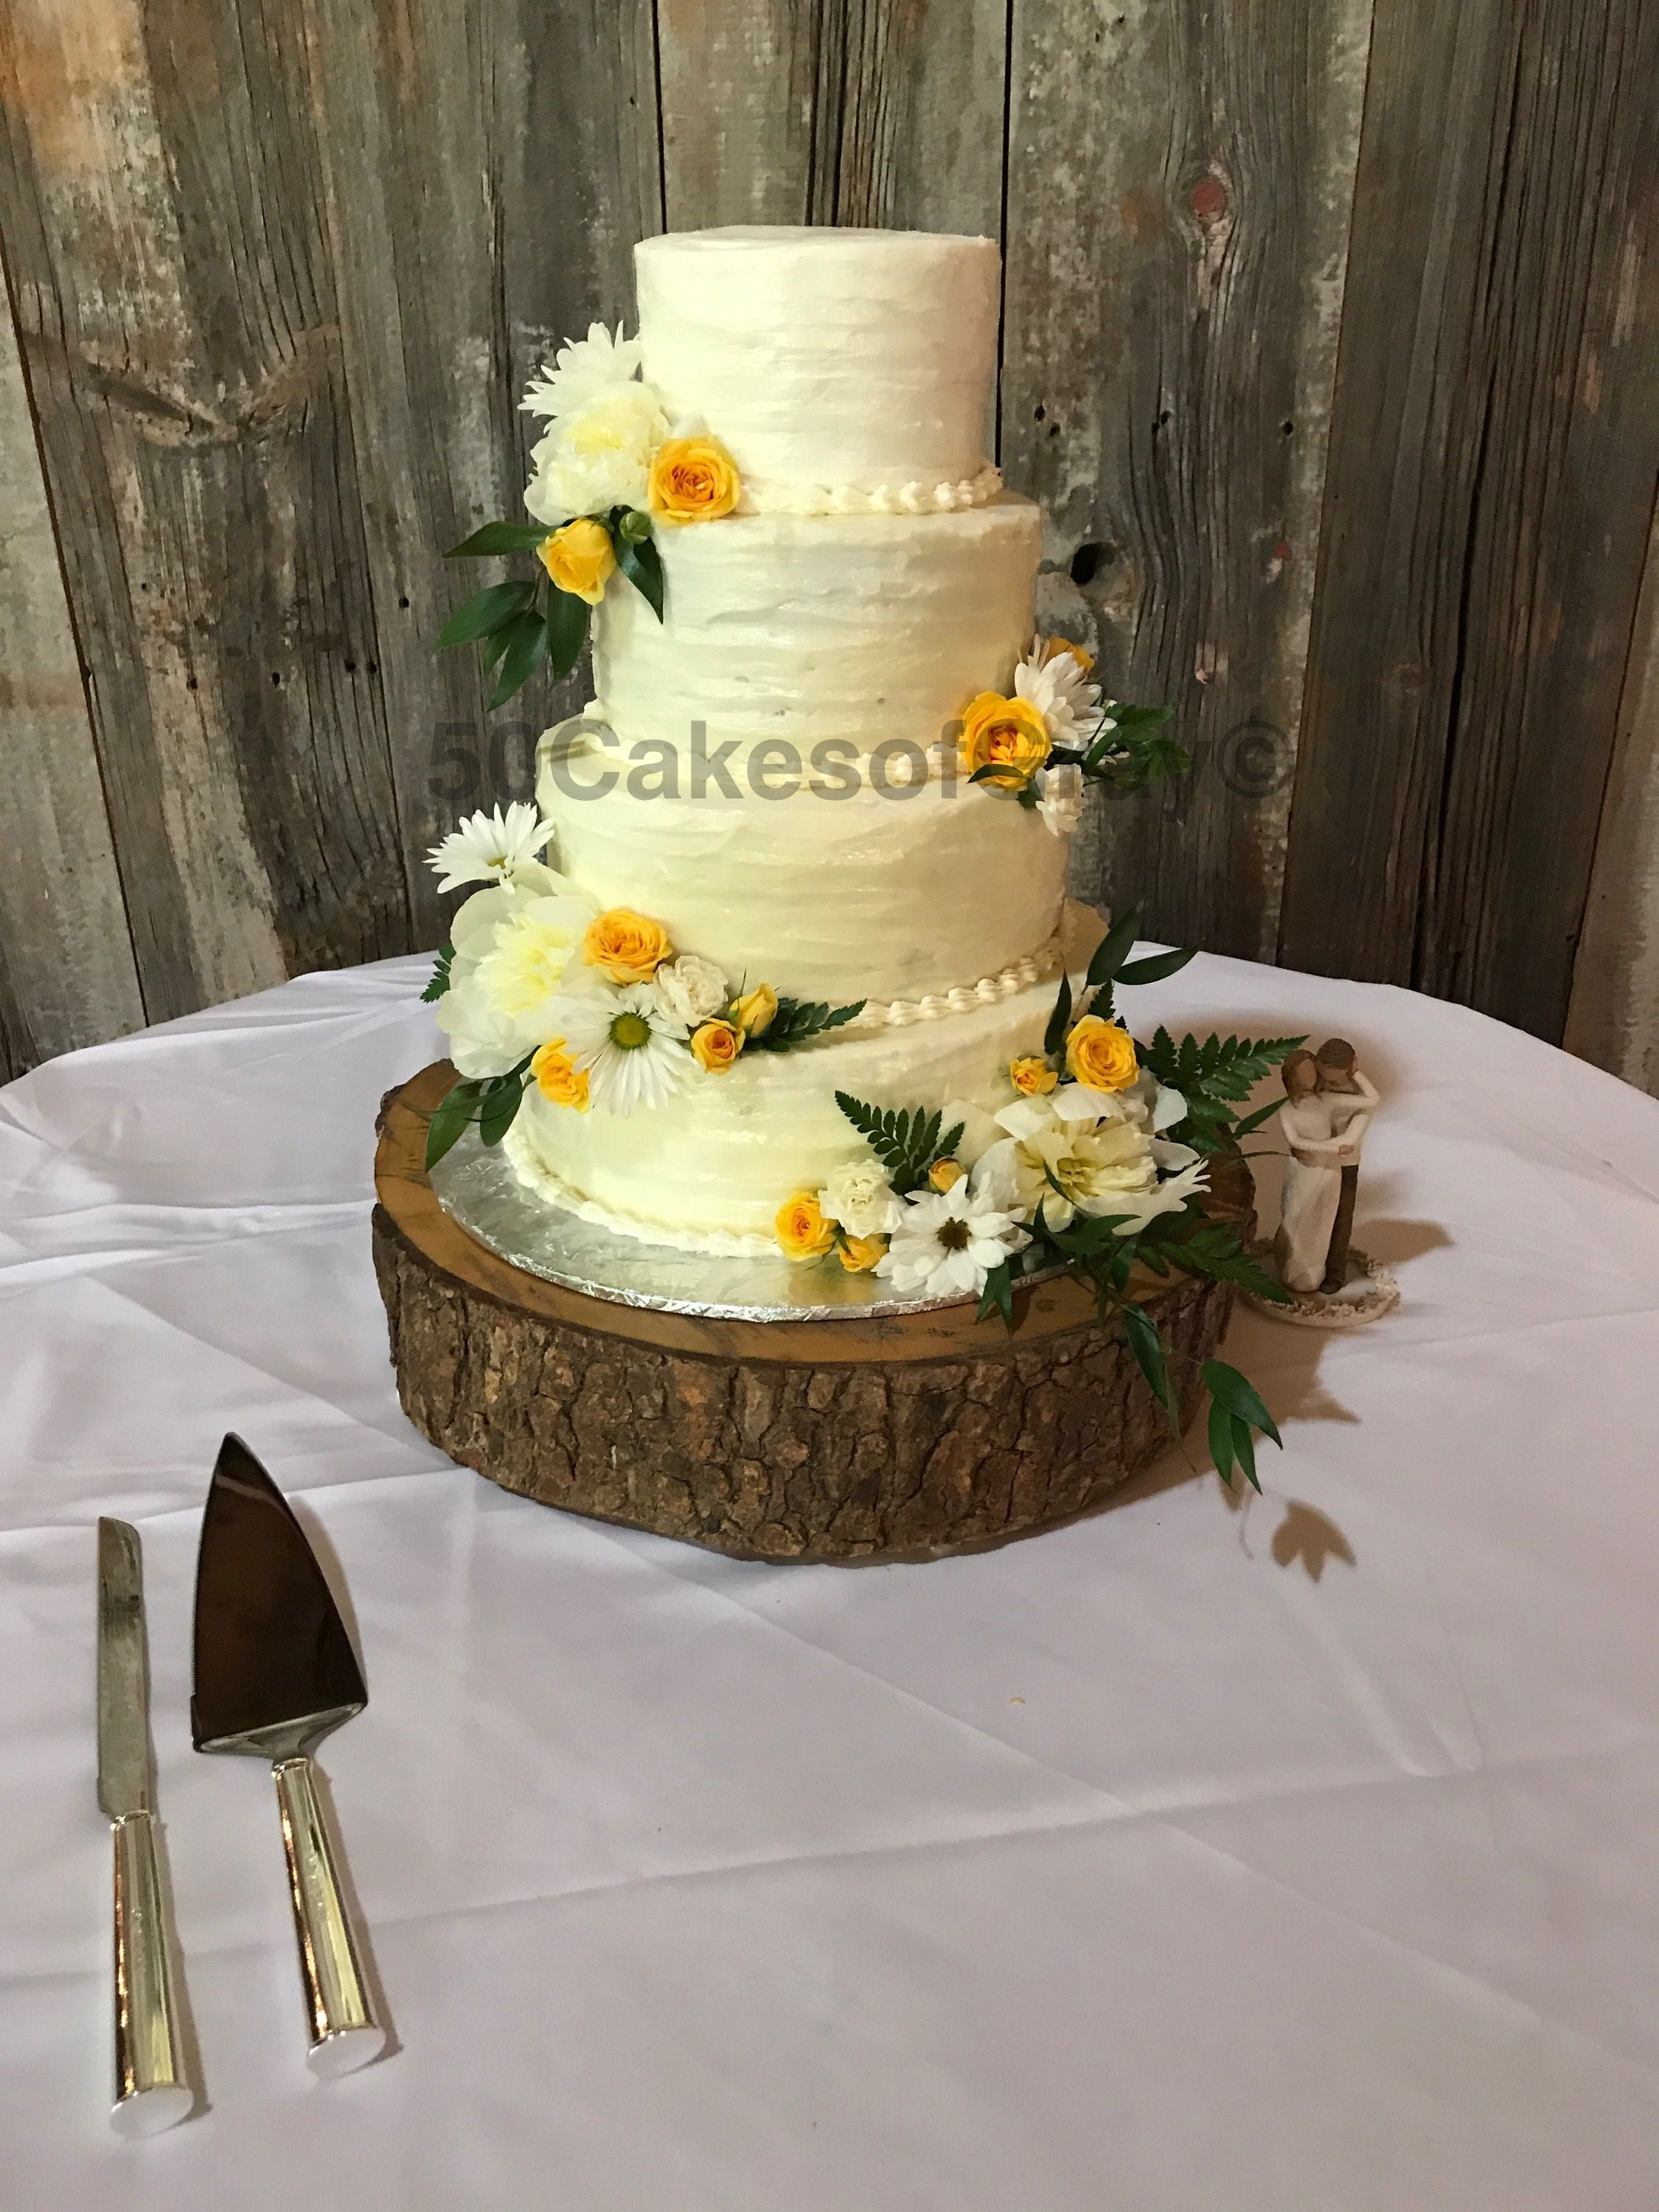 Rustic Wedding Cake I Made 50 Cakes Of Gray Mallory Memphis Tn